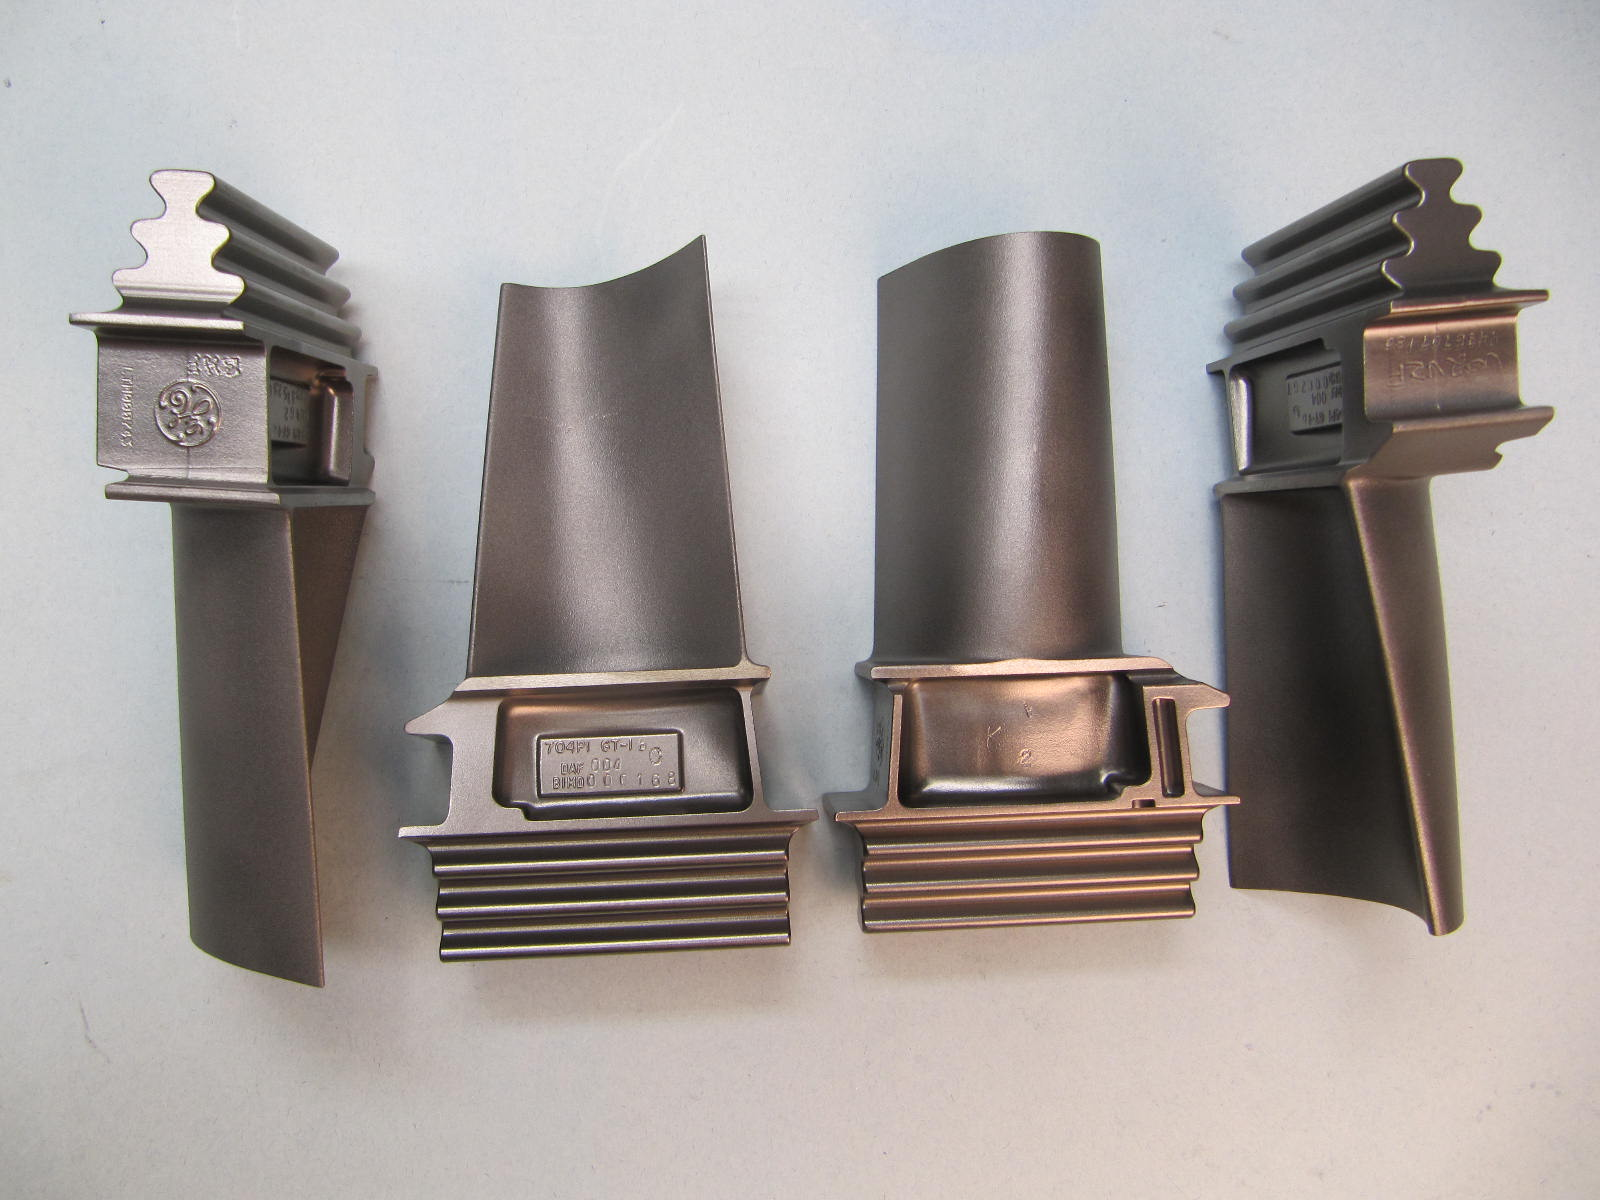 MS5001 Stage 1 Buckets